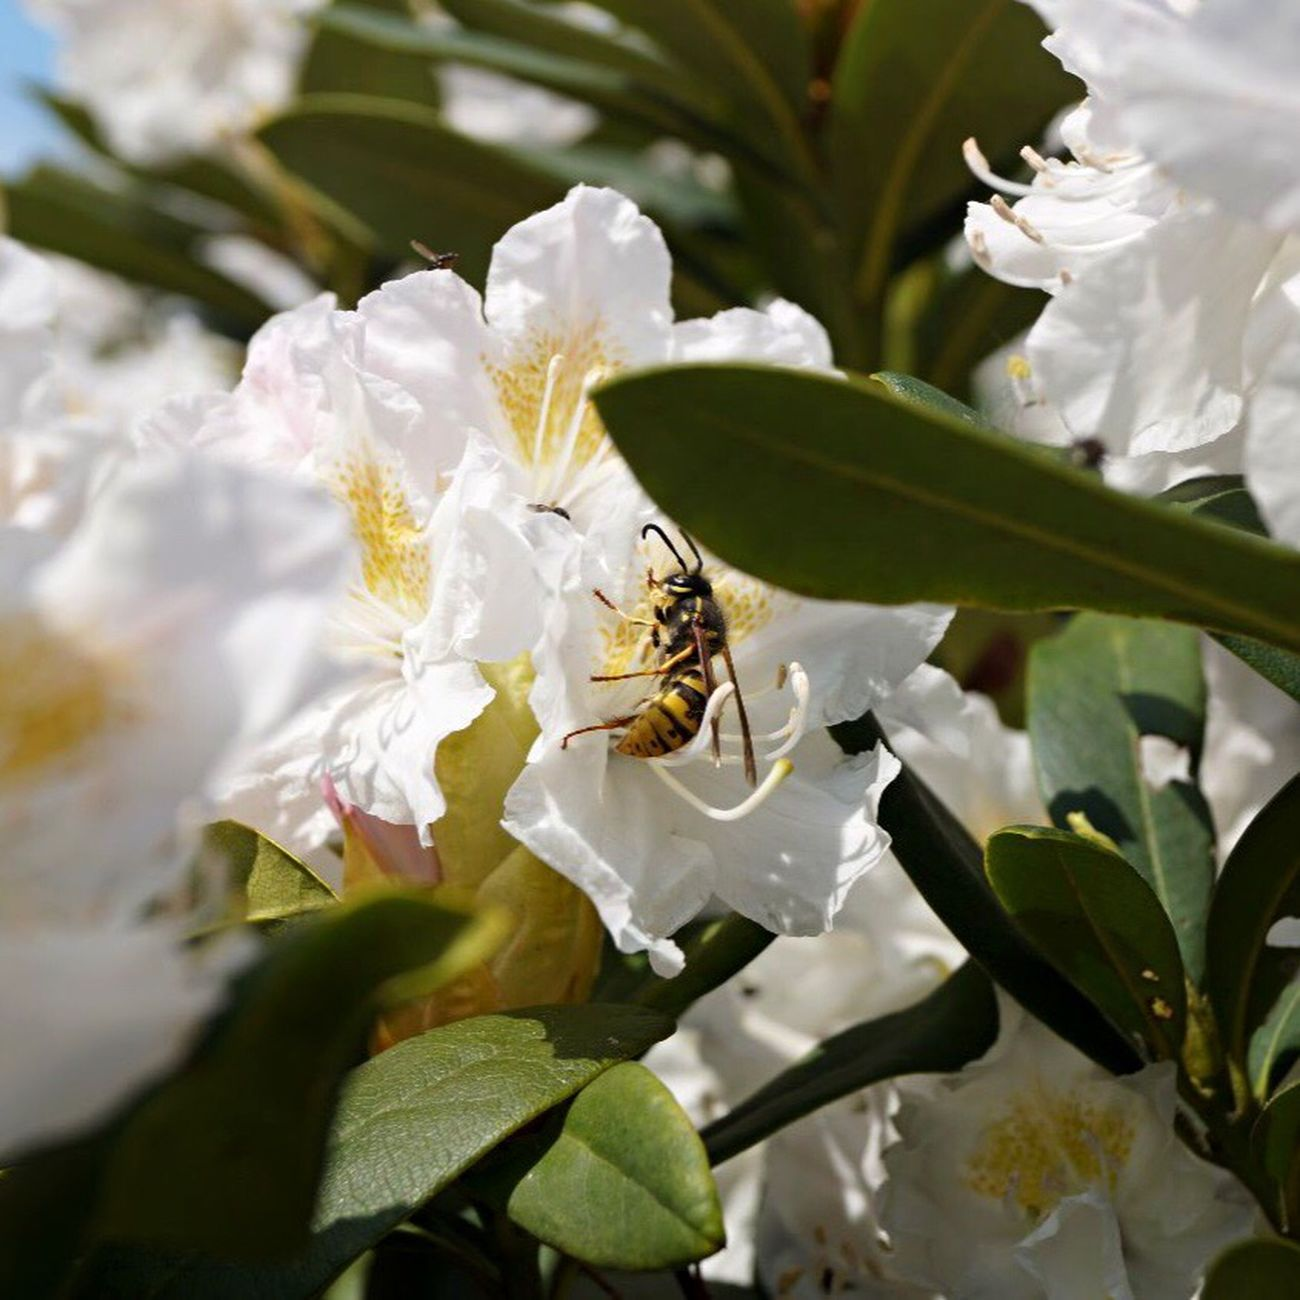 One Animal Insect Animal Themes White Color Animals In The Wild Flower Wildlife Bee Nature Petal Animal Wildlife Growth Day Leaf No People Plant Pollination Fragility Outdoors Beauty In Nature